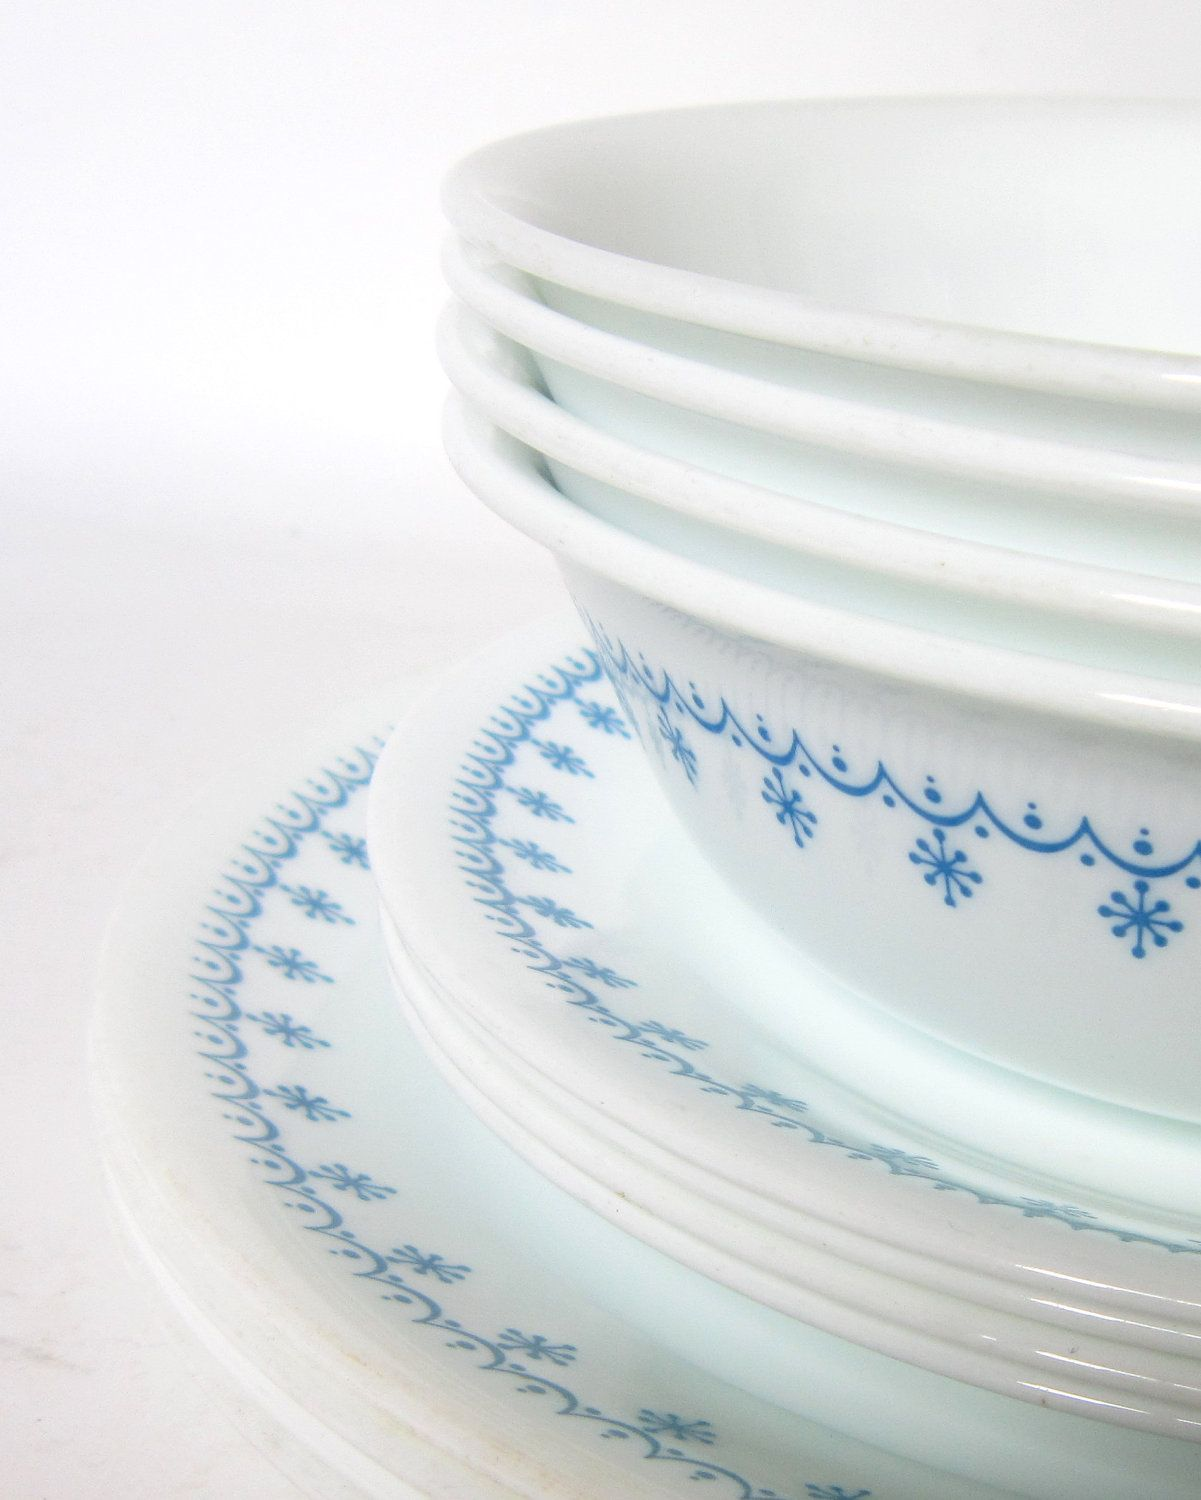 Black Friday Etsy 15% Off -- 12-Pc Corelle  Snowflake Blue  Dinnerware Set - Service for 4- Garland Blue u0026 White Dishes and Bowls & Black Friday Etsy 15% Off -- 12-Pc Corelle